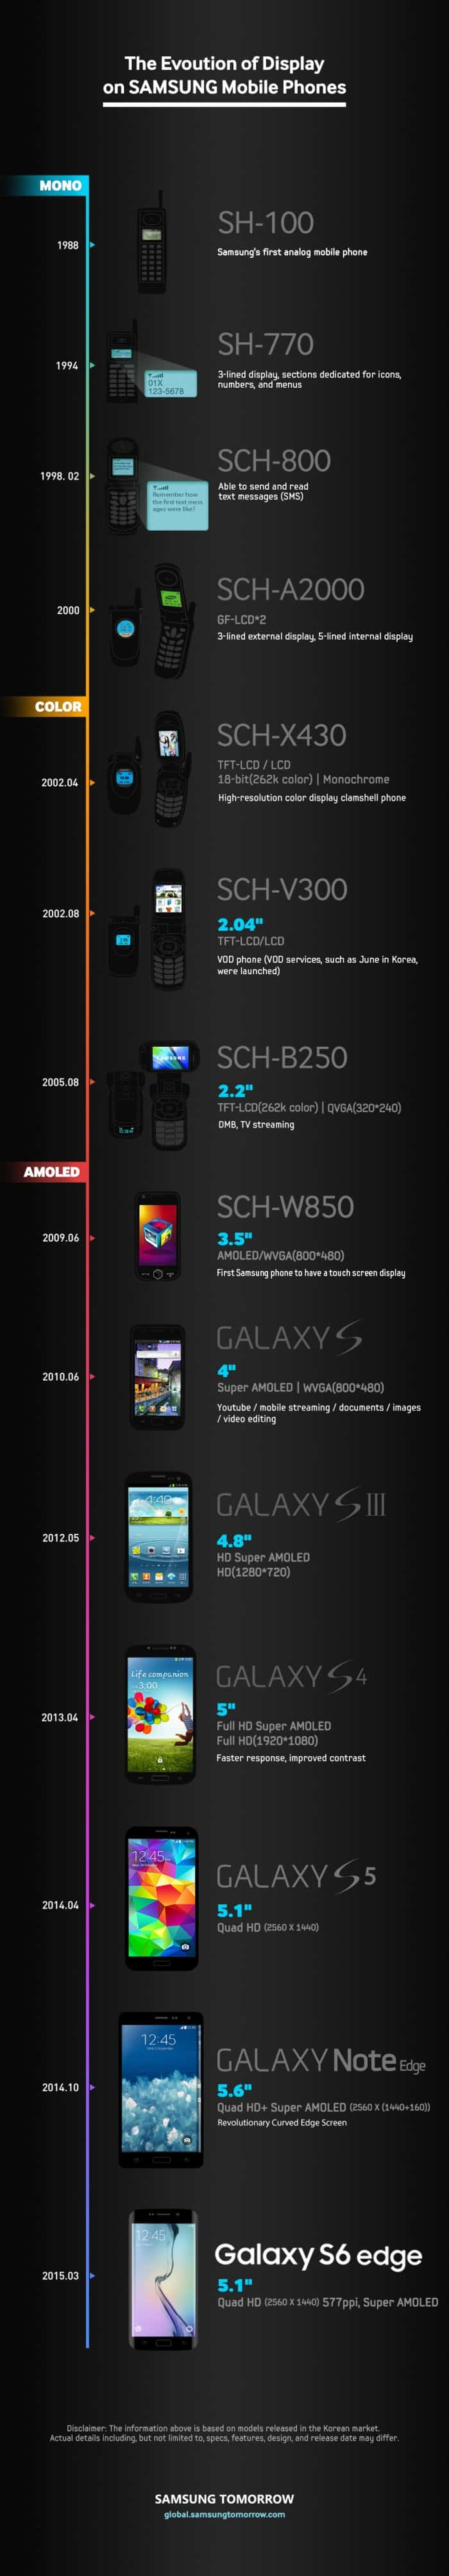 The Evolution of Display screens on Samsung Mobile Phones [infographic] - 1